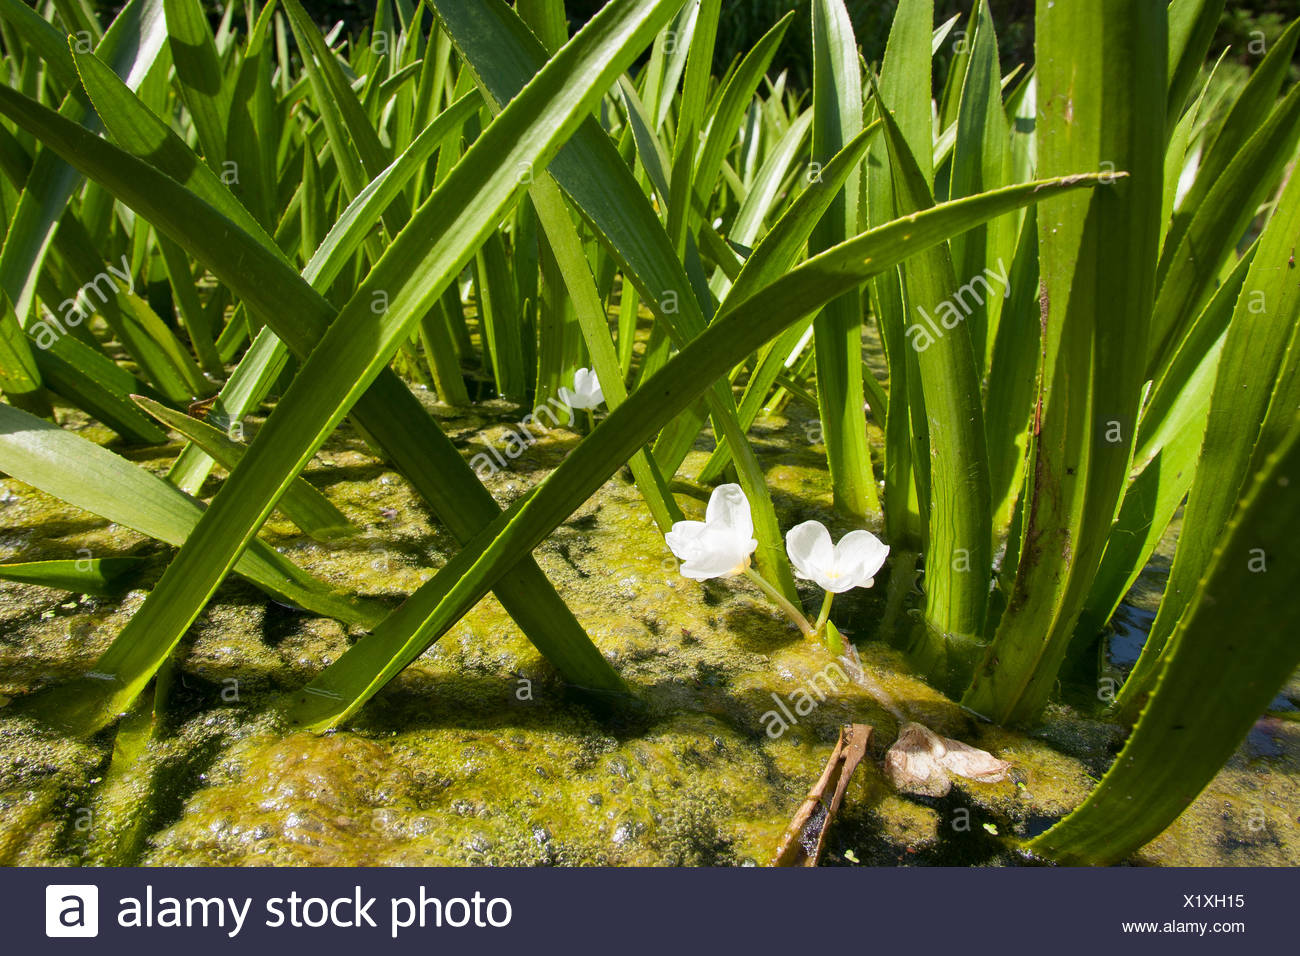 crab's-claw, water-soldier (Stratiotes aloides), blooming, Germany - Stock Image